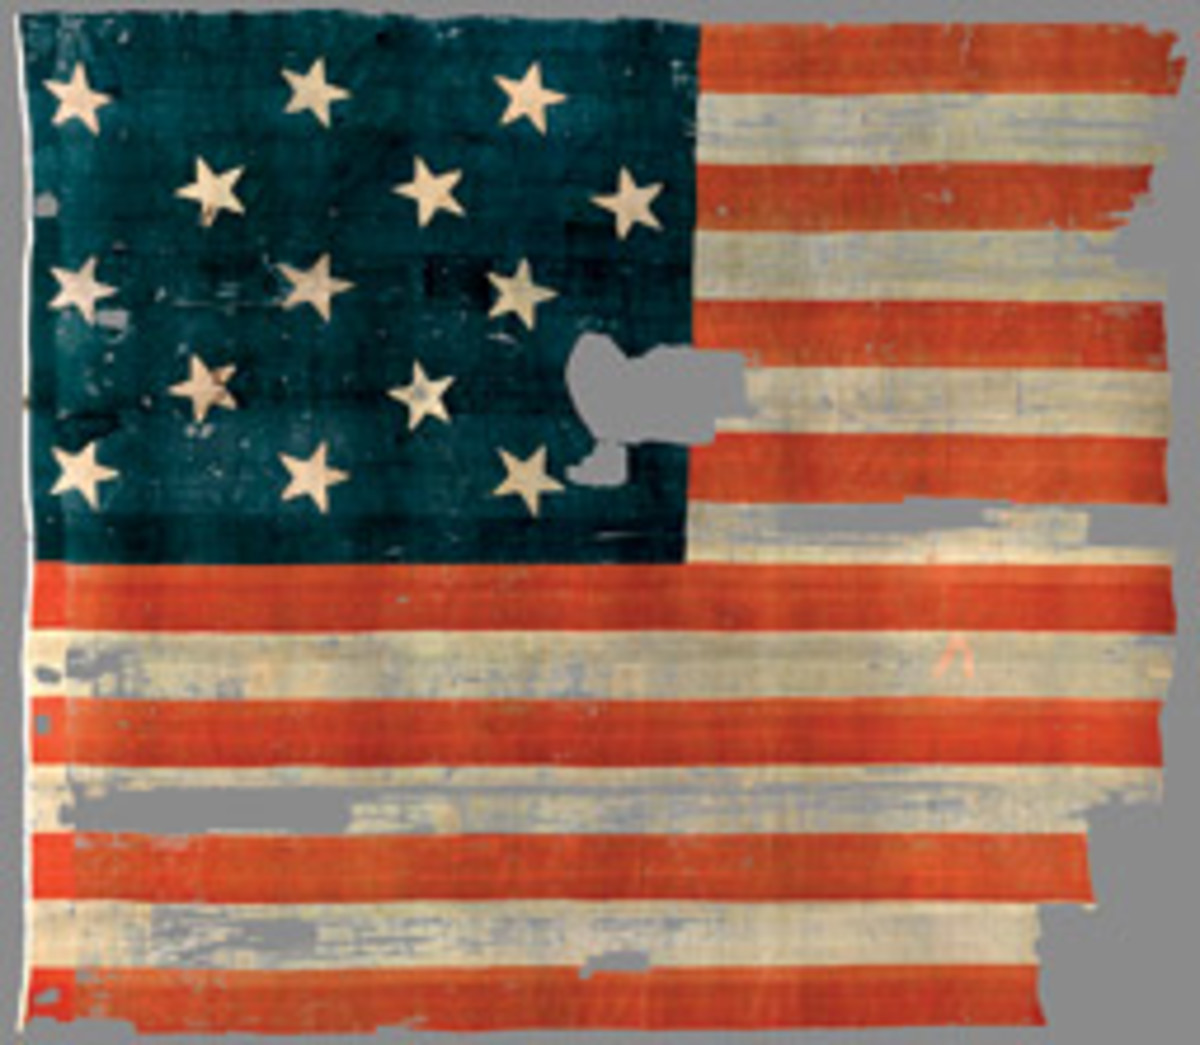 The original Star-Spangled Banner is again on display at the Smithsonian Institution in Washington, D.C.